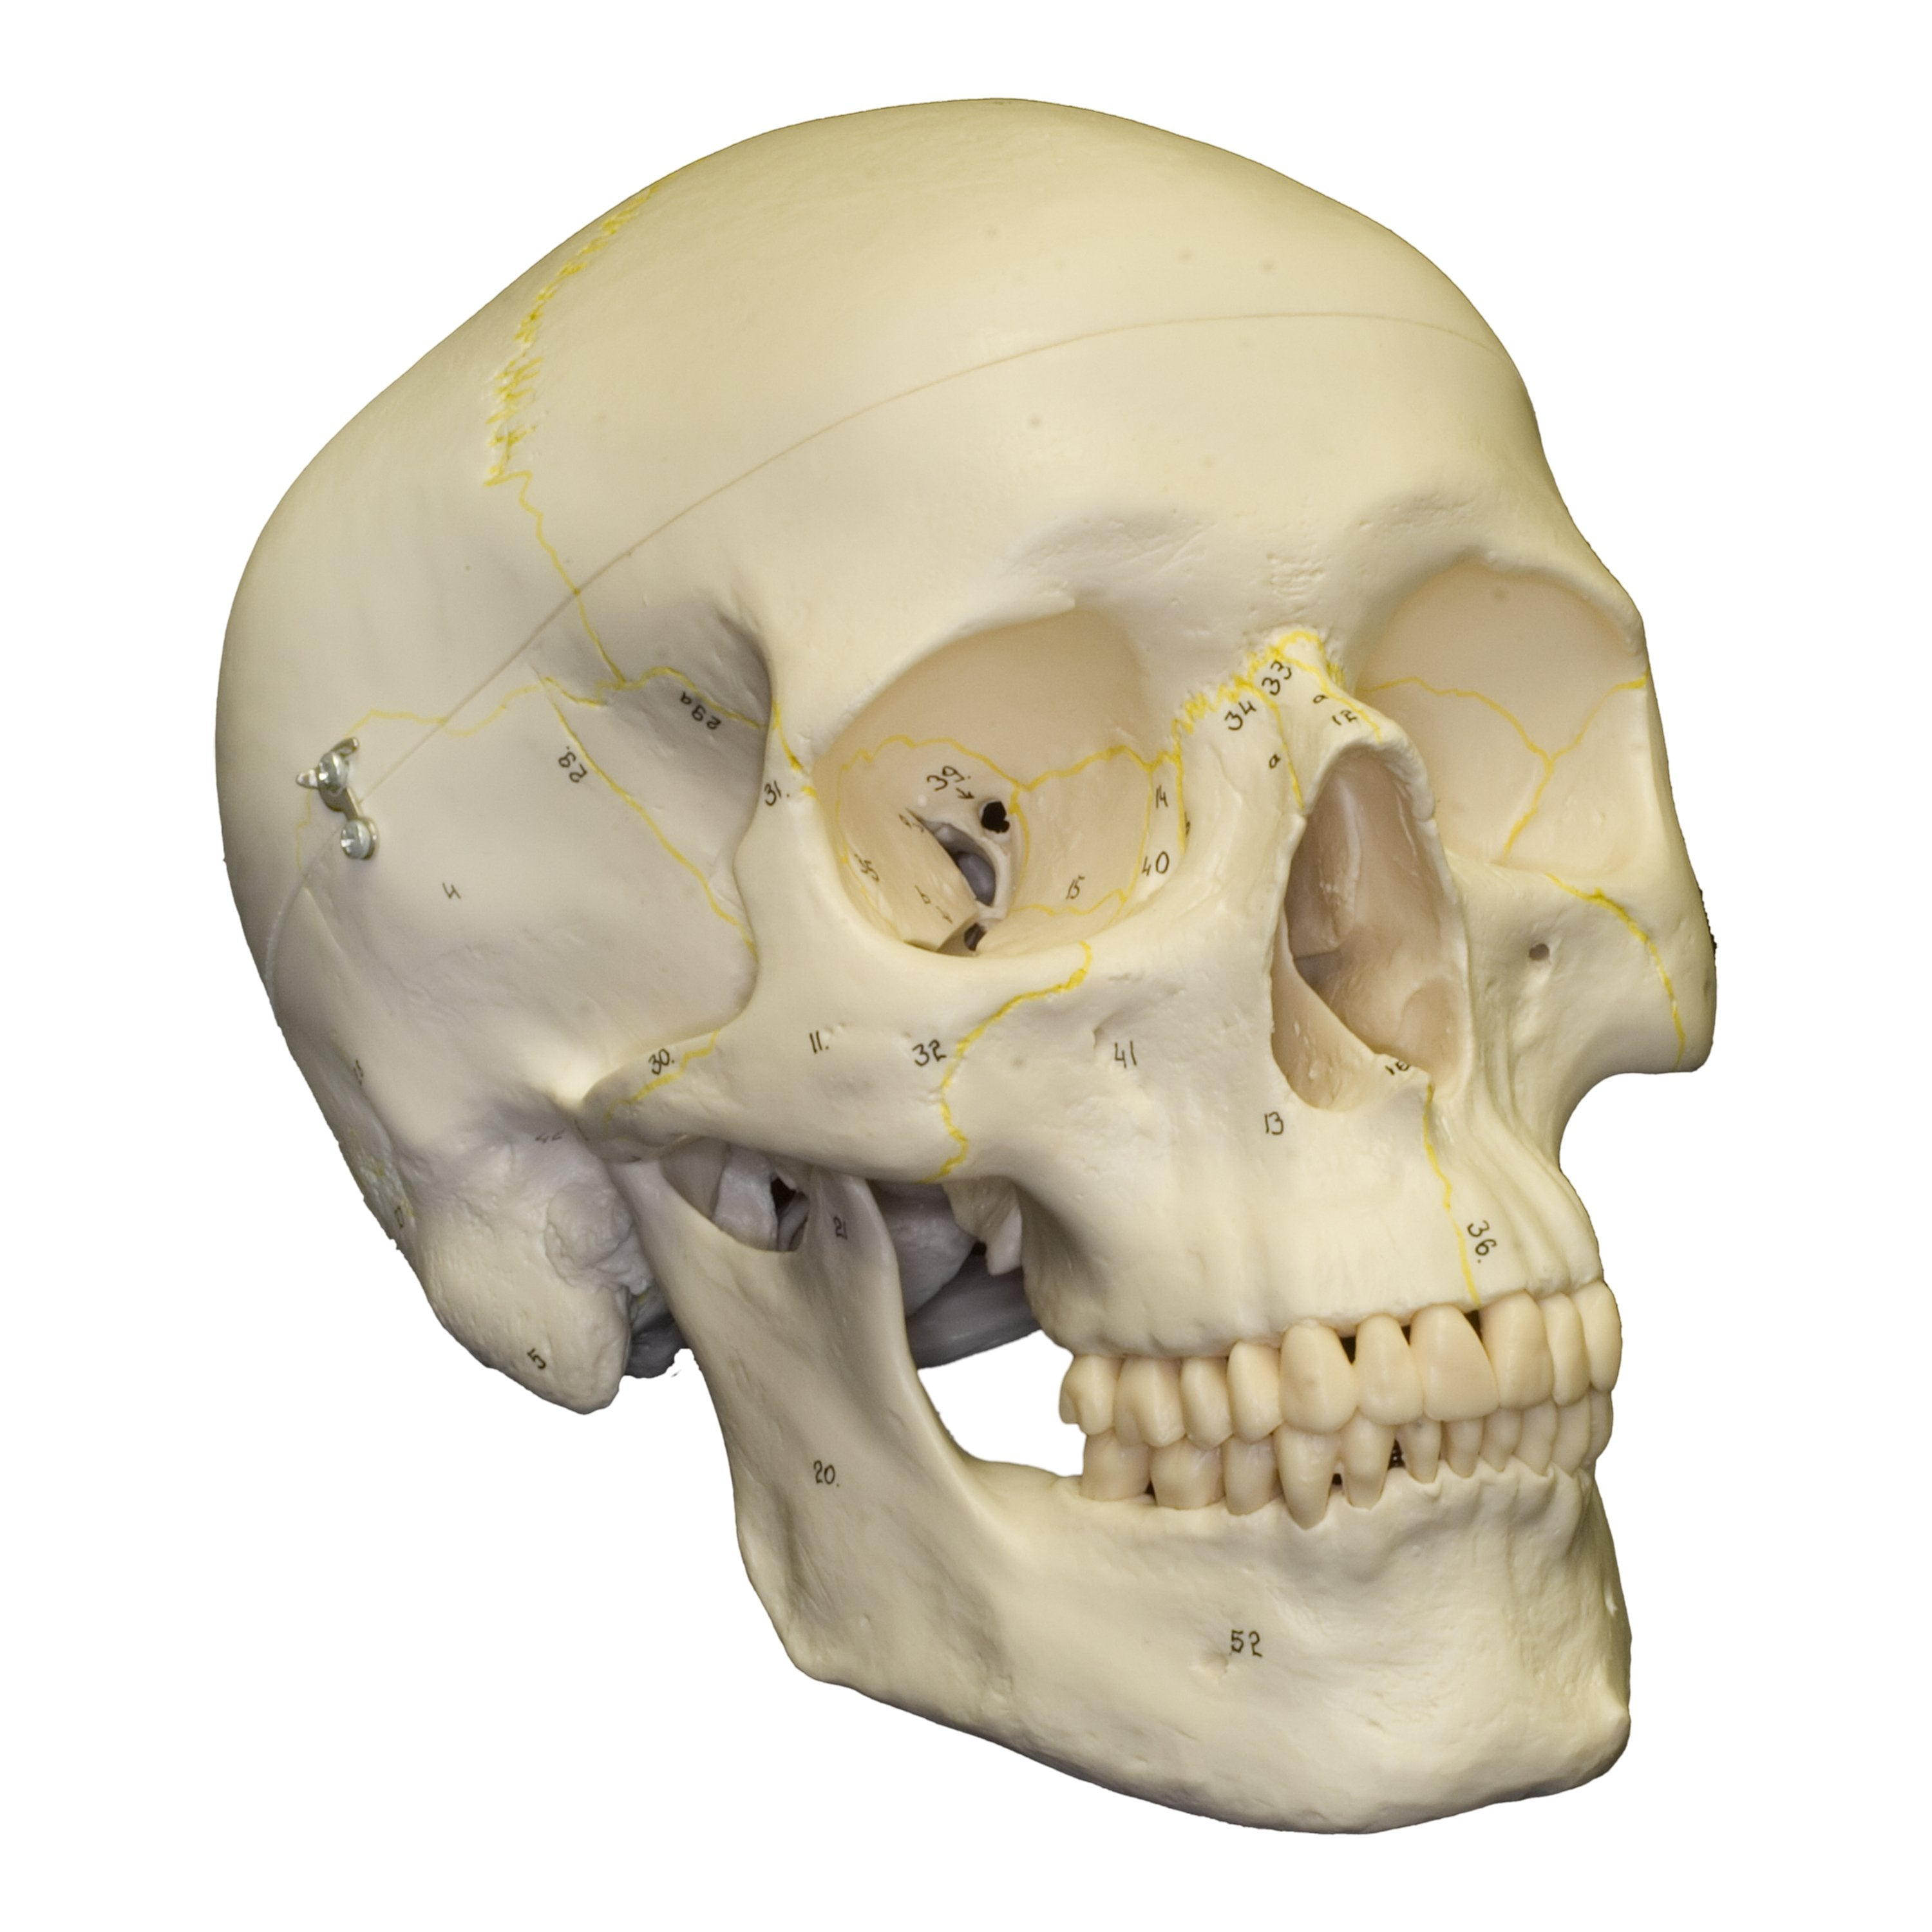 Replica Human Skull Numbered For Sale Skulls Unlimited